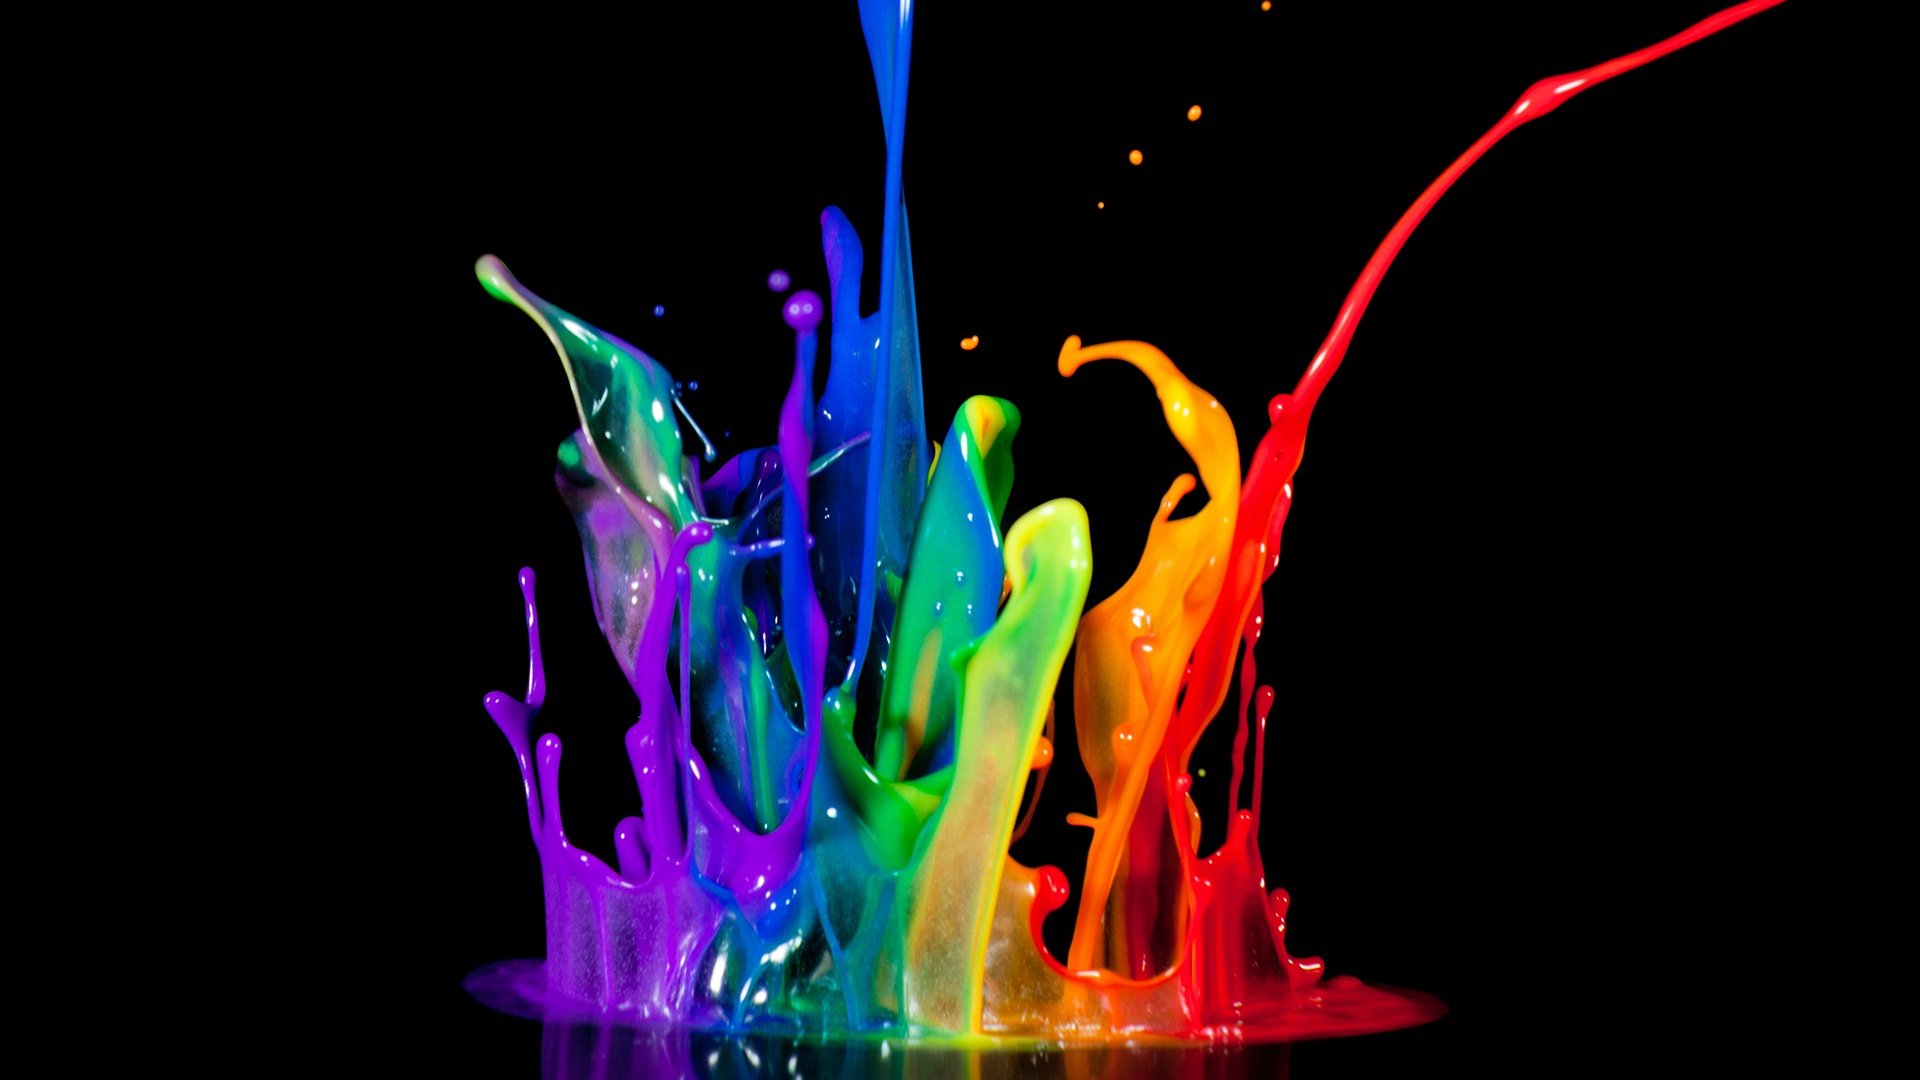 Colorful HD Wallpaper | 1920x1080 | ID:23254 | colorful art